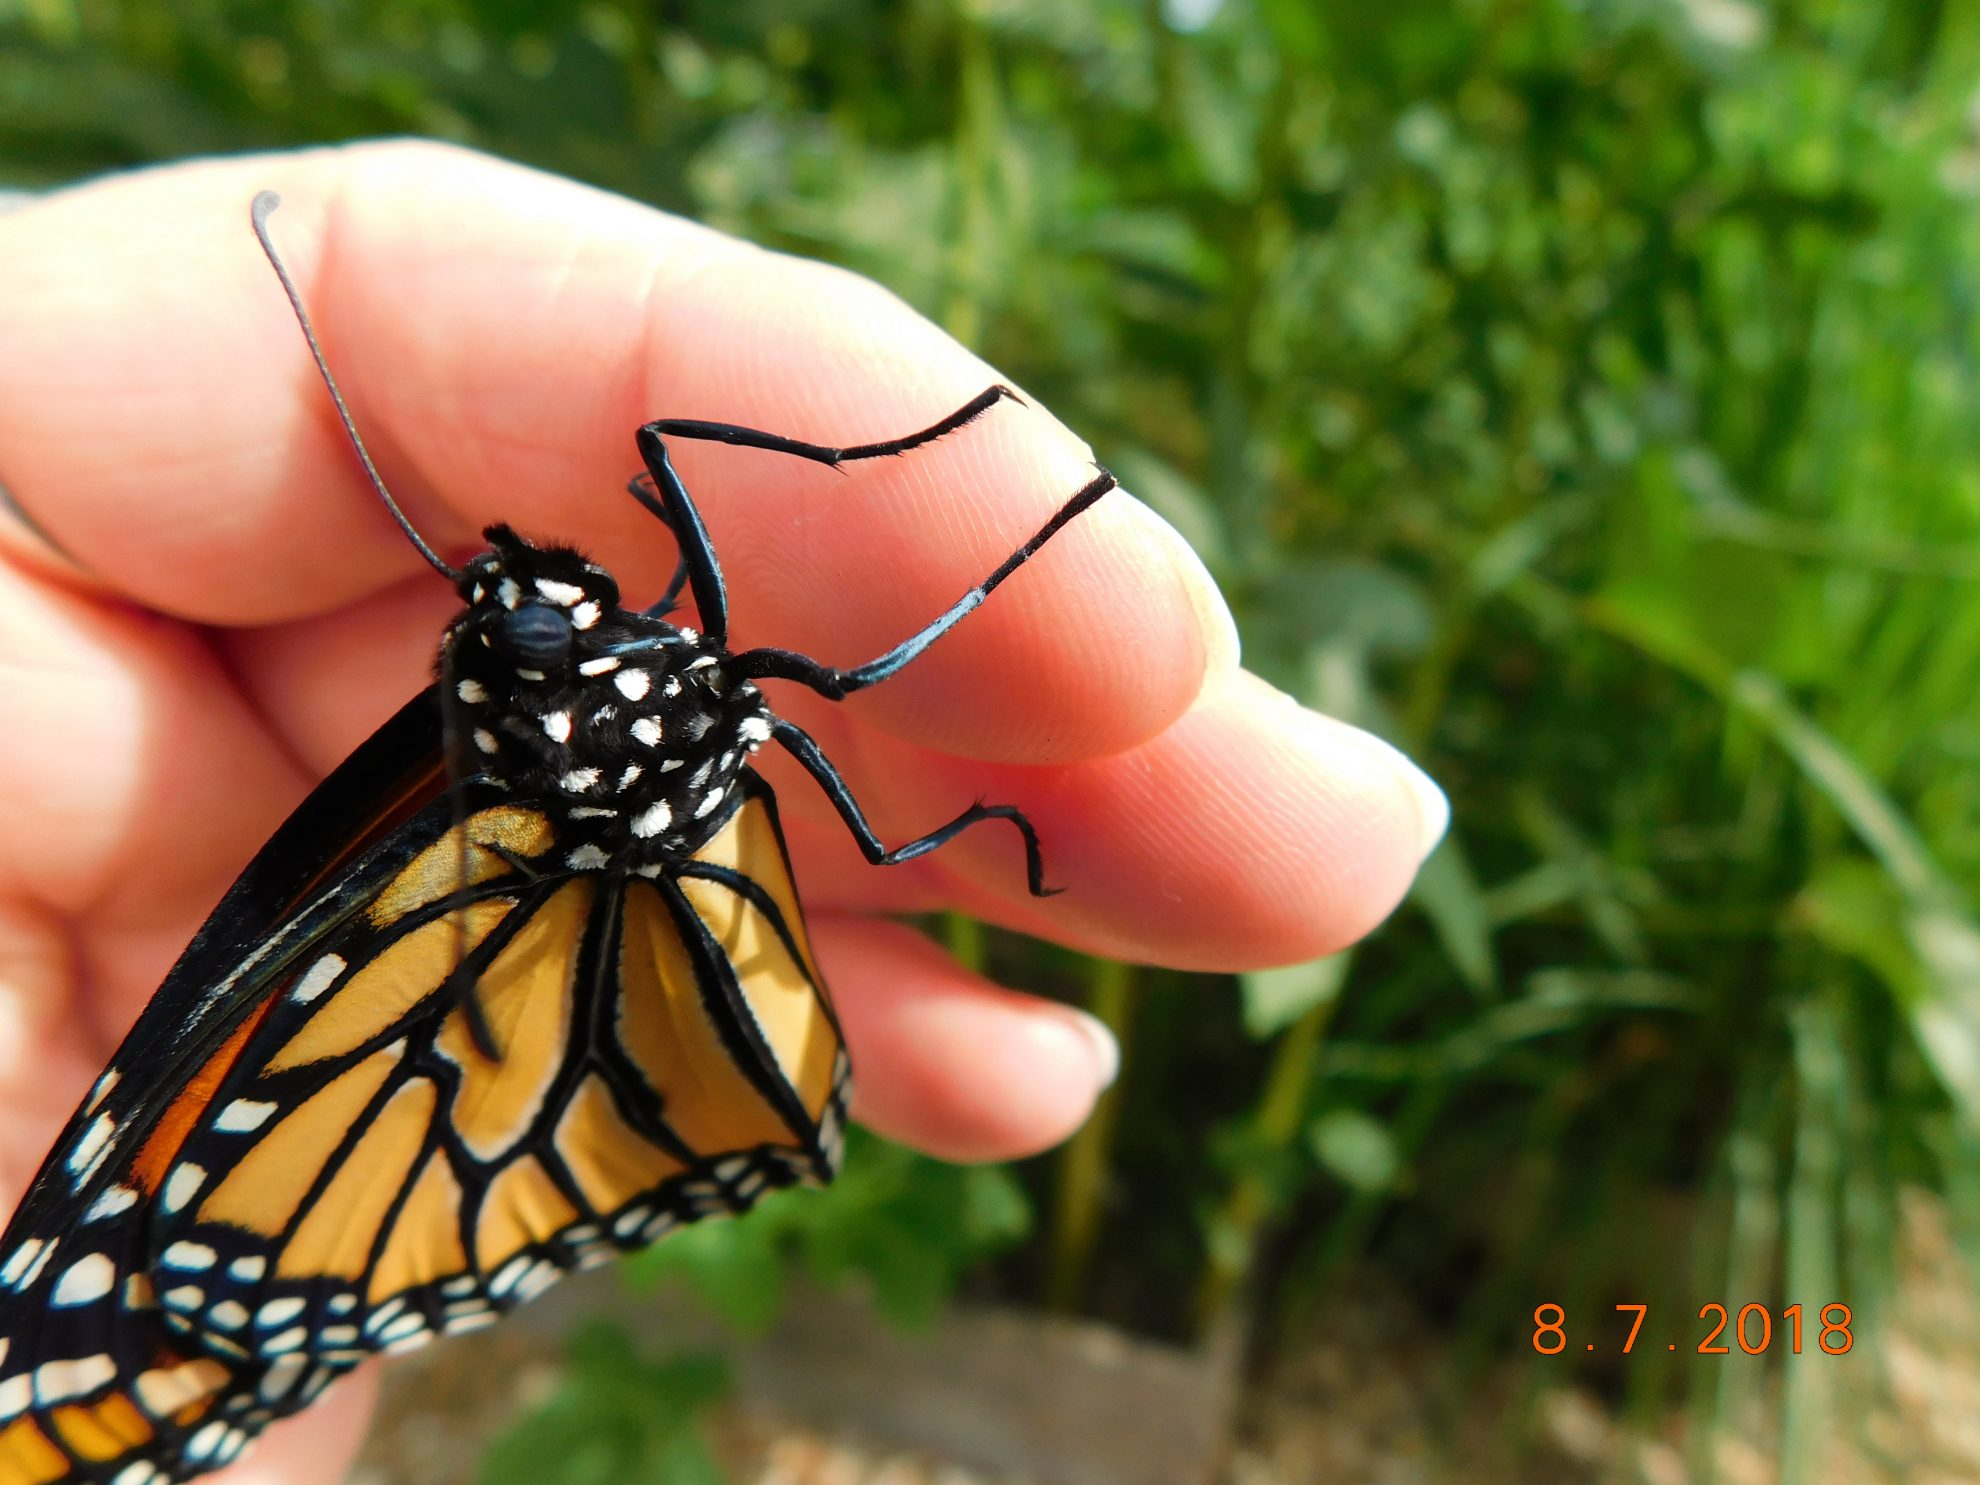 Do you long to REALLY teach your kids about nature? The butterfly theme can be crafts, or you can dive into the science of these creatures too.